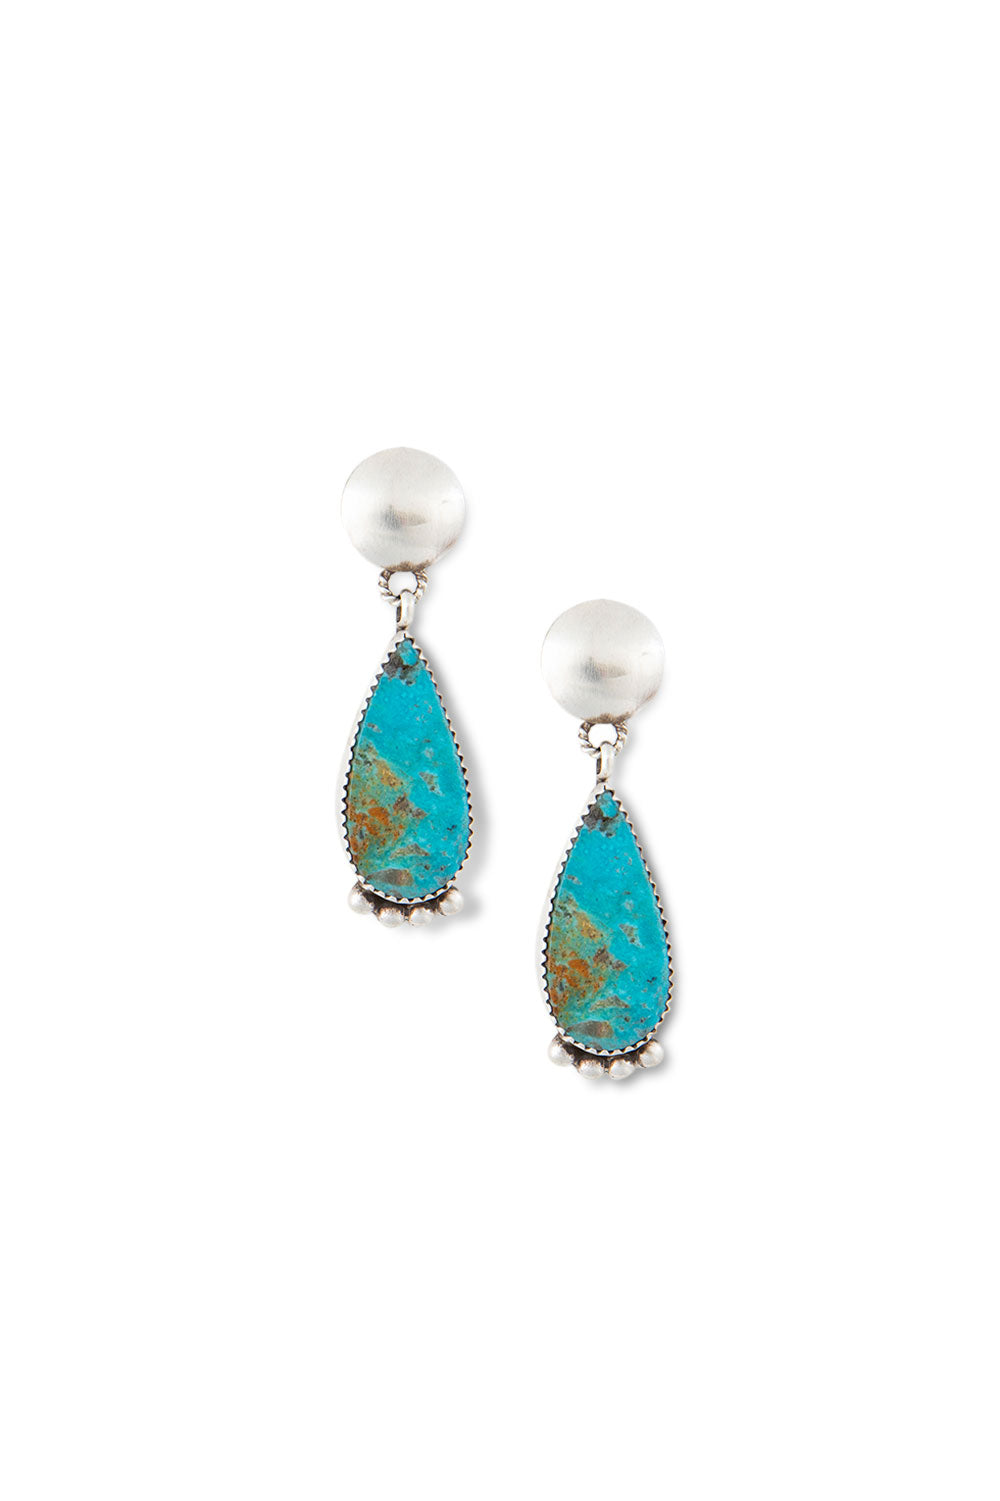 Earrings, Slab, Turquoise, Hallmark, 406